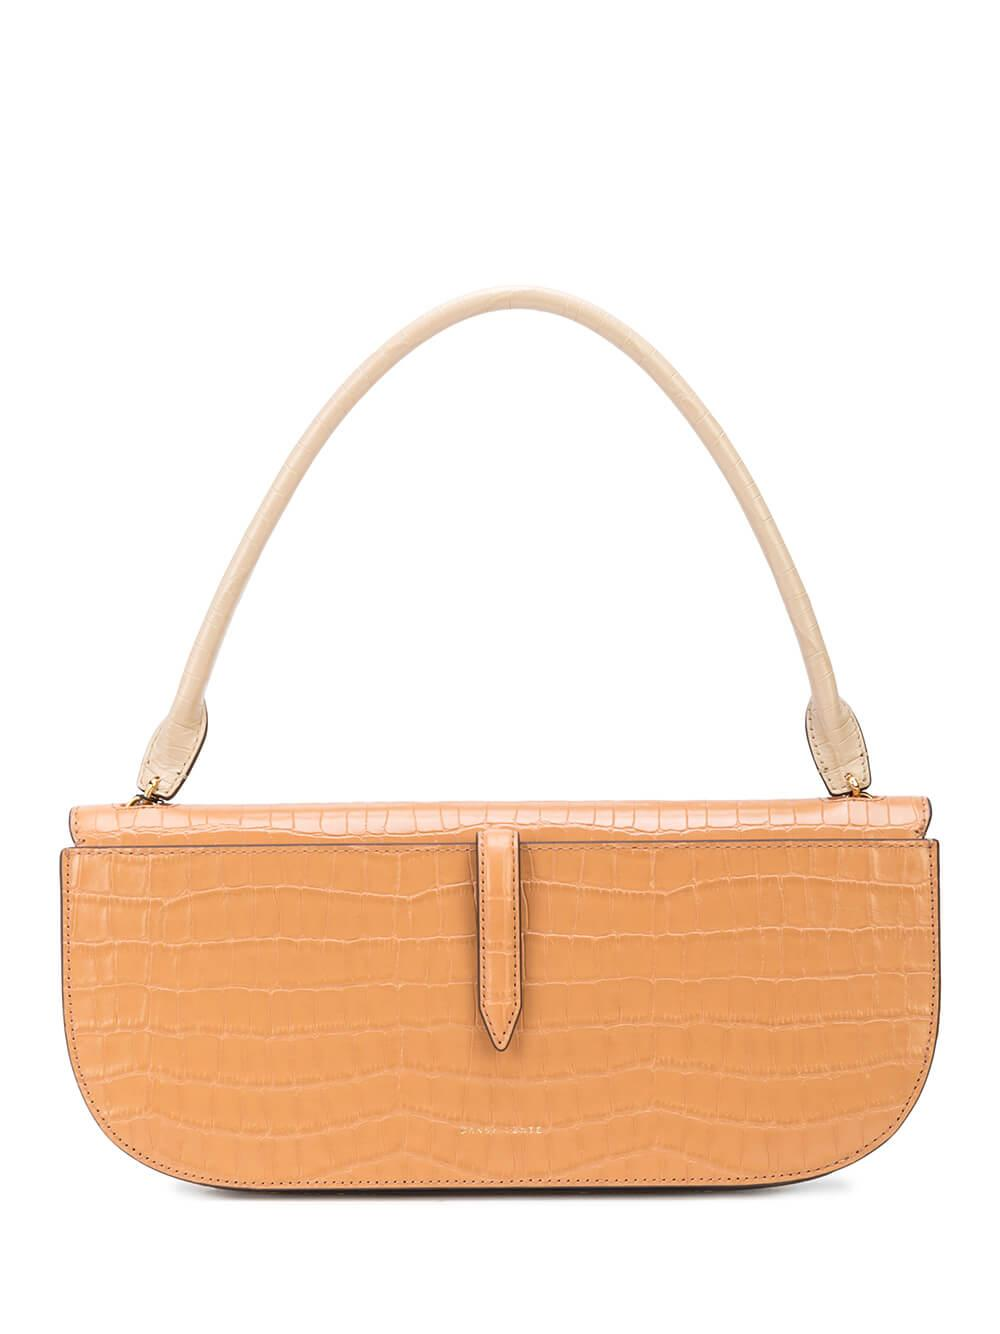 Baguette Shoulder Bag Item # S20-31-2094